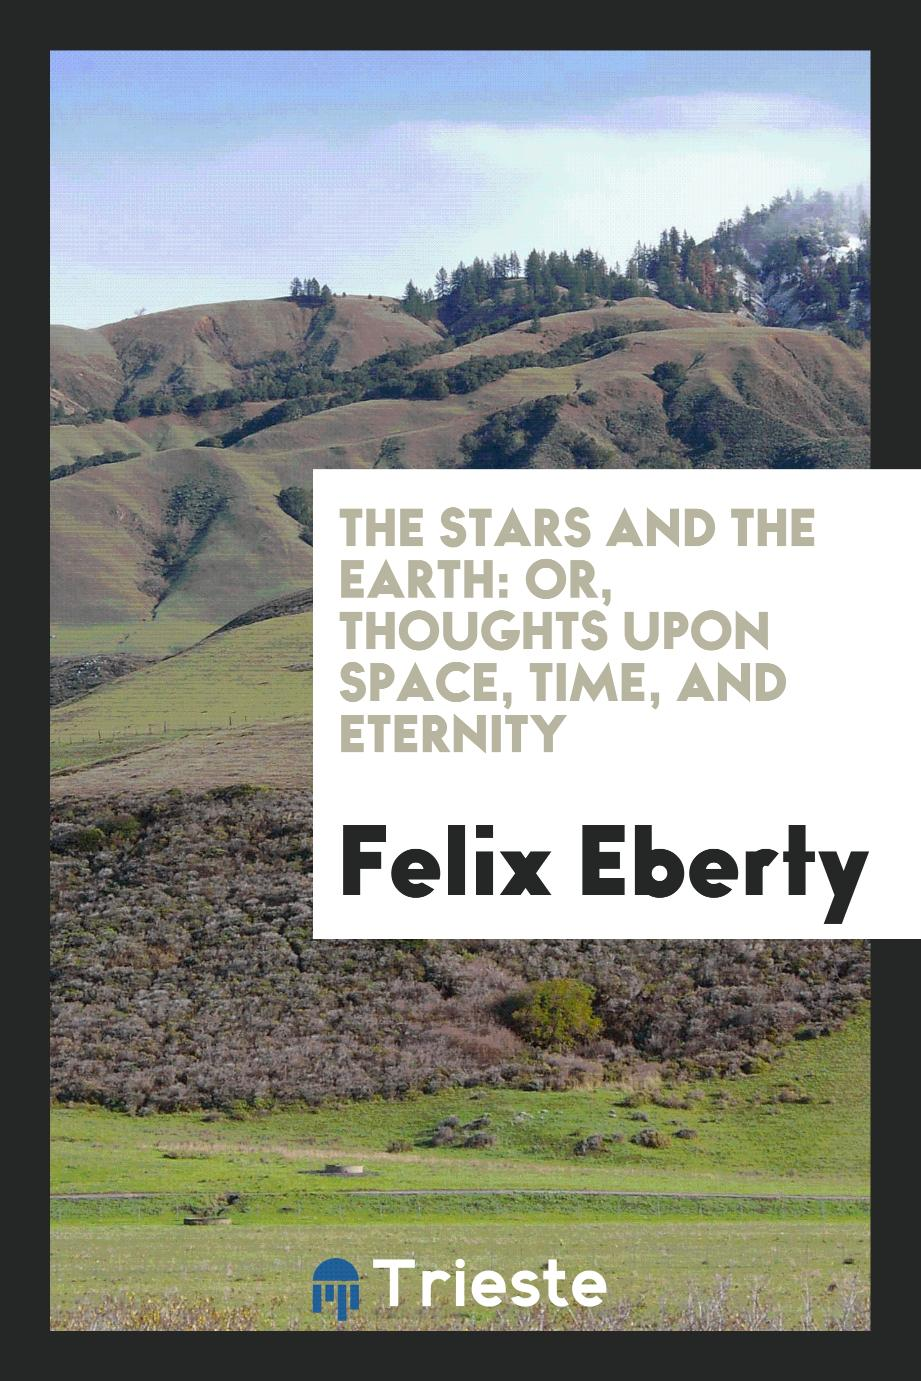 The Stars and the Earth: Or, Thoughts Upon Space, Time, and Eternity